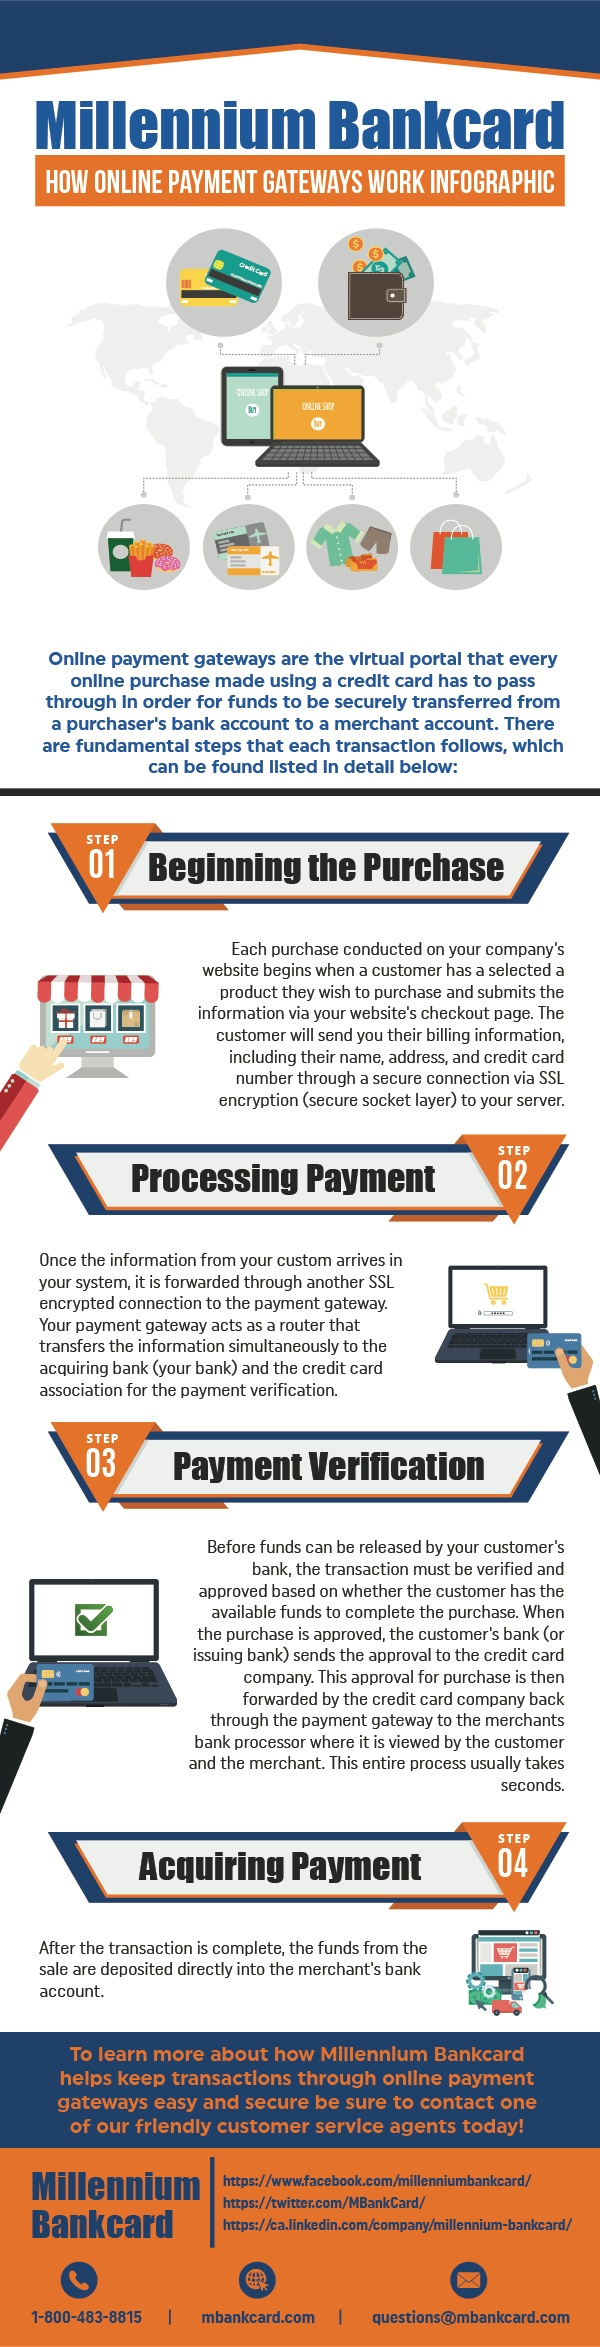 INFOGRAPHIC: How Online Payment Gateways Work